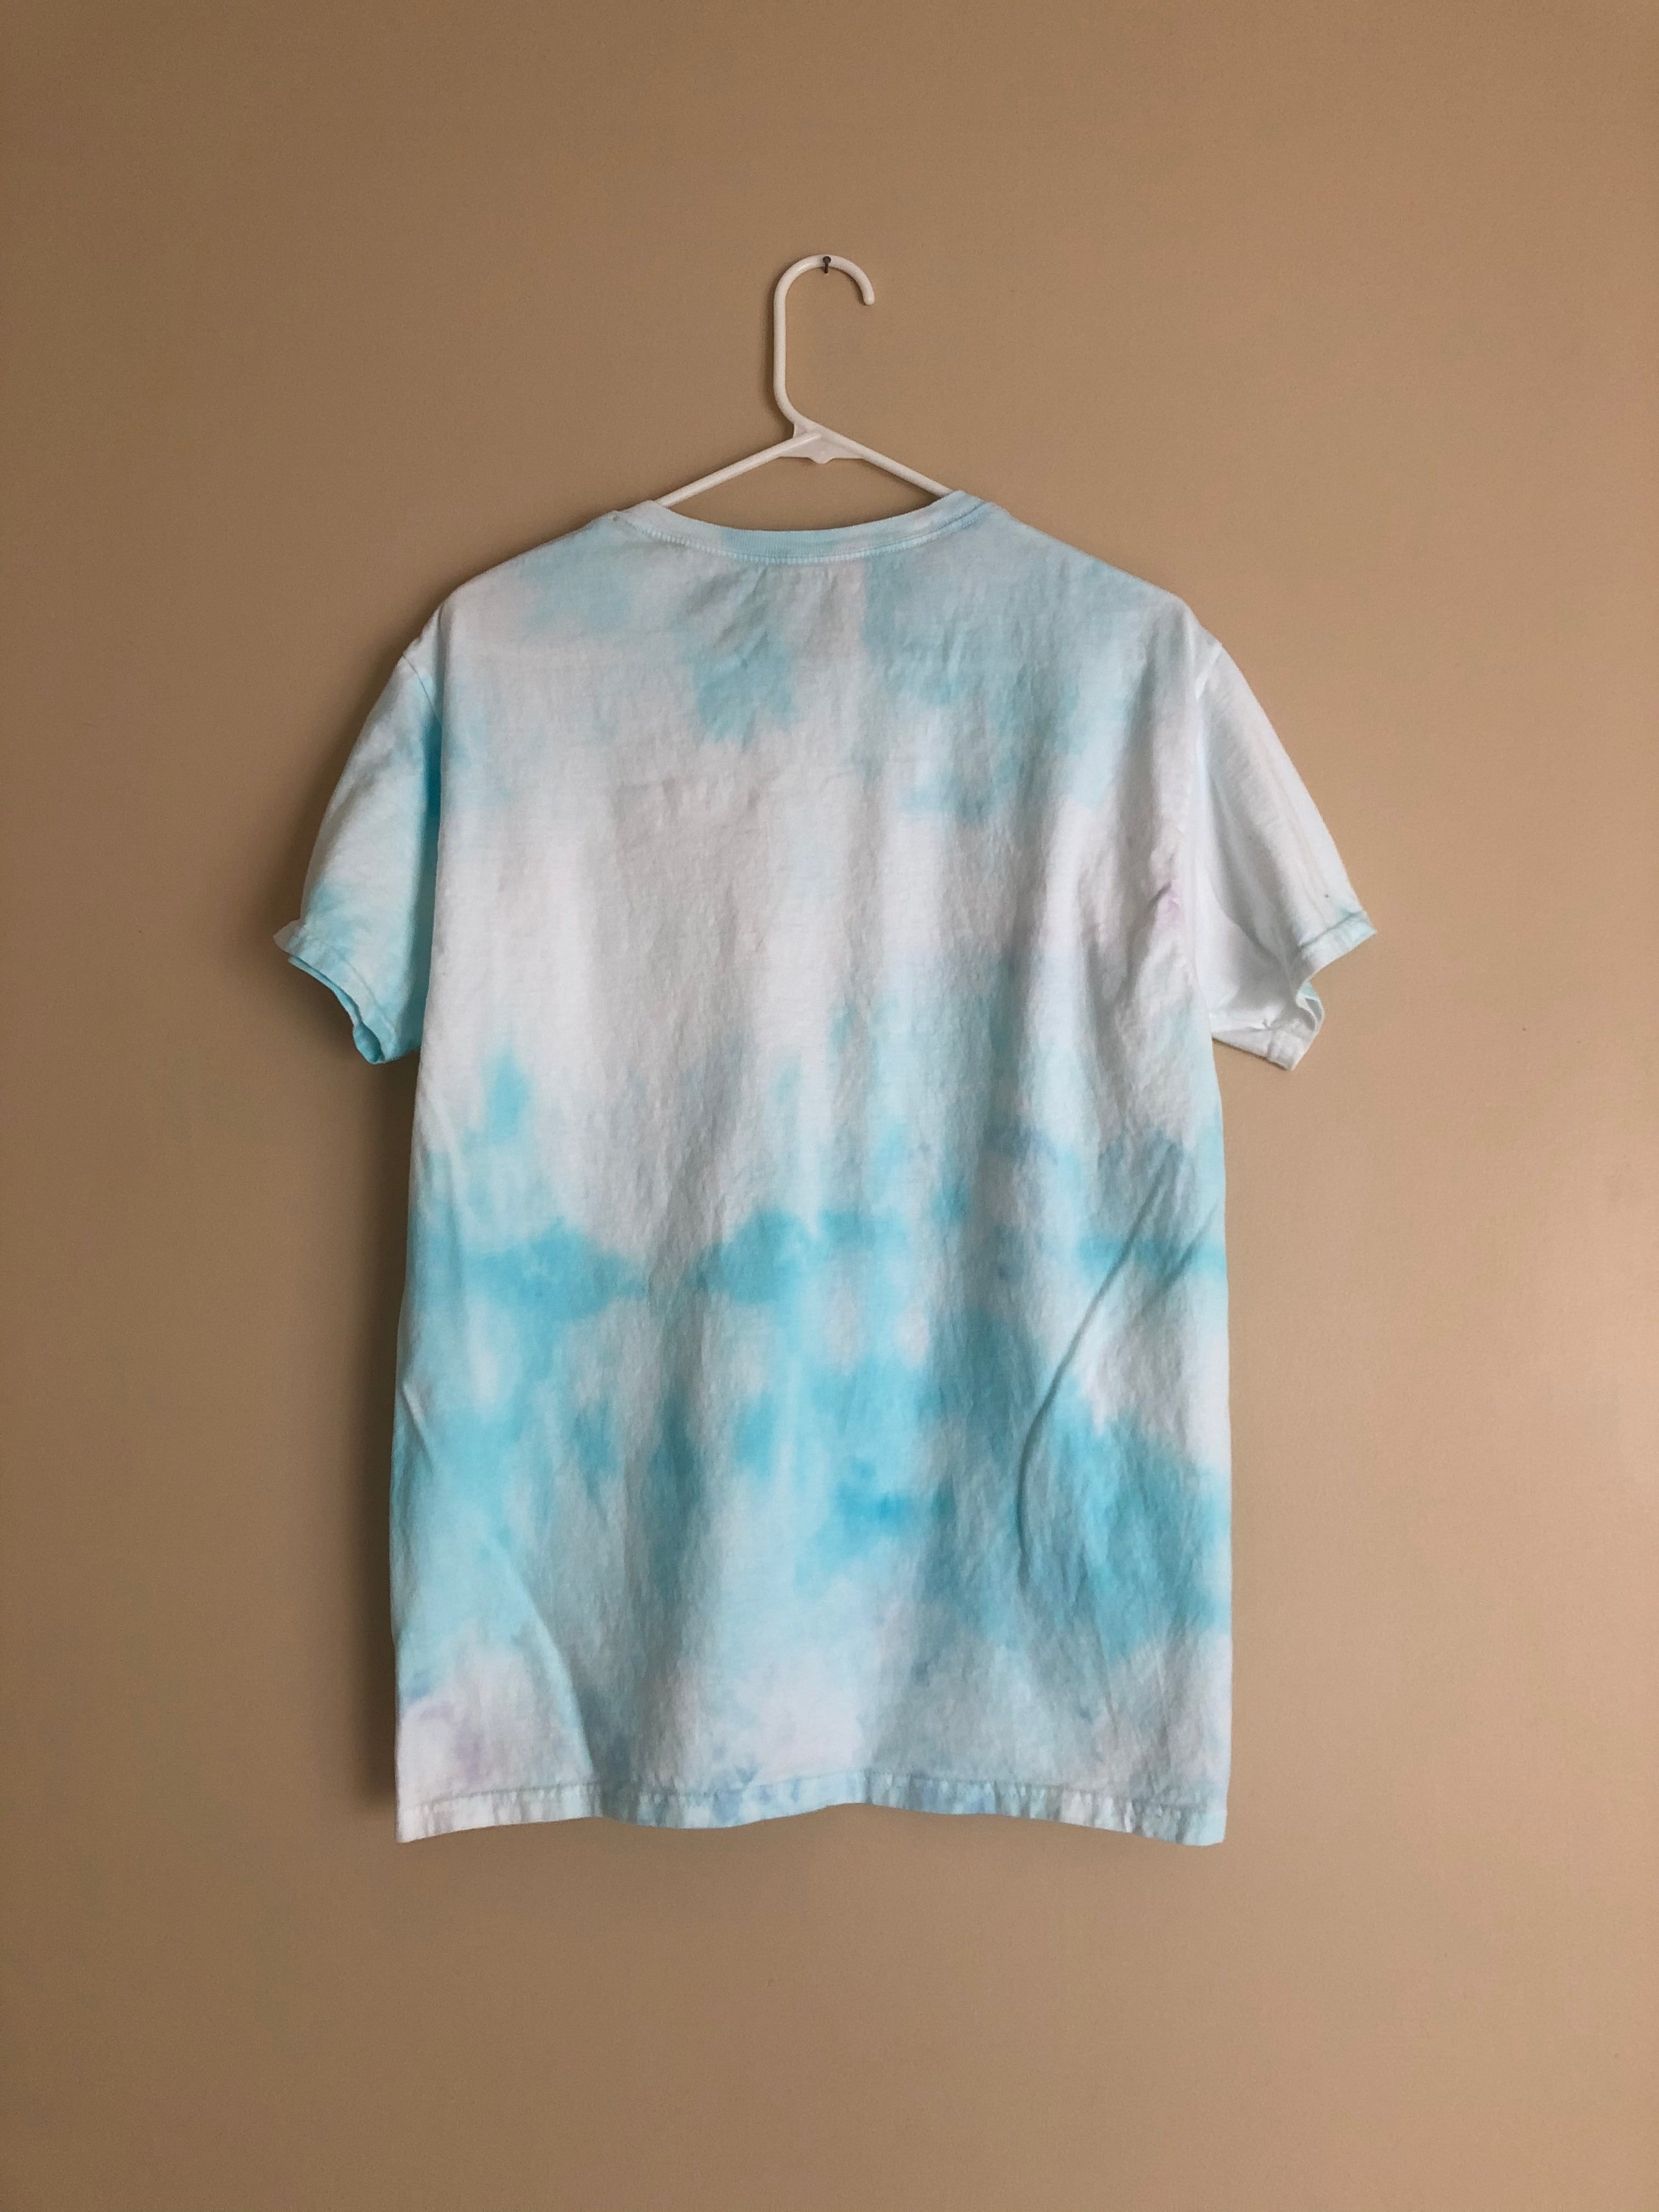 Iced Tie Dye Basic Tee - Blue Clouds - M